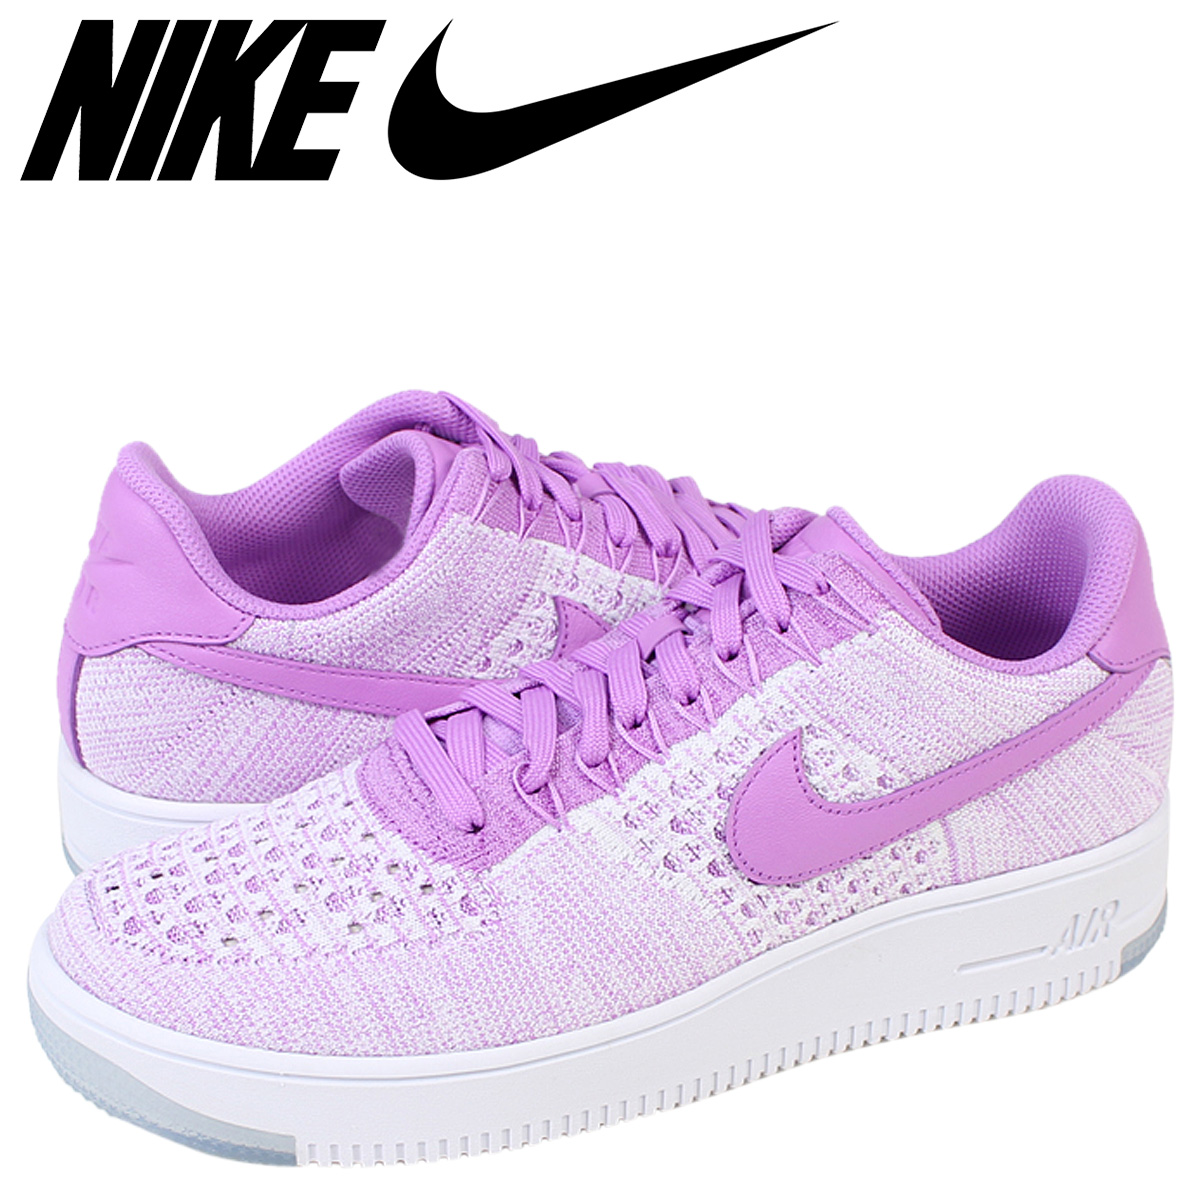 wholesale dealer f292e 7f3e8 Nike air force NIKE sneakers WMNS AIR FORCE 1 FLYKNIT LOW air force low  820,256-500 fuchsia men